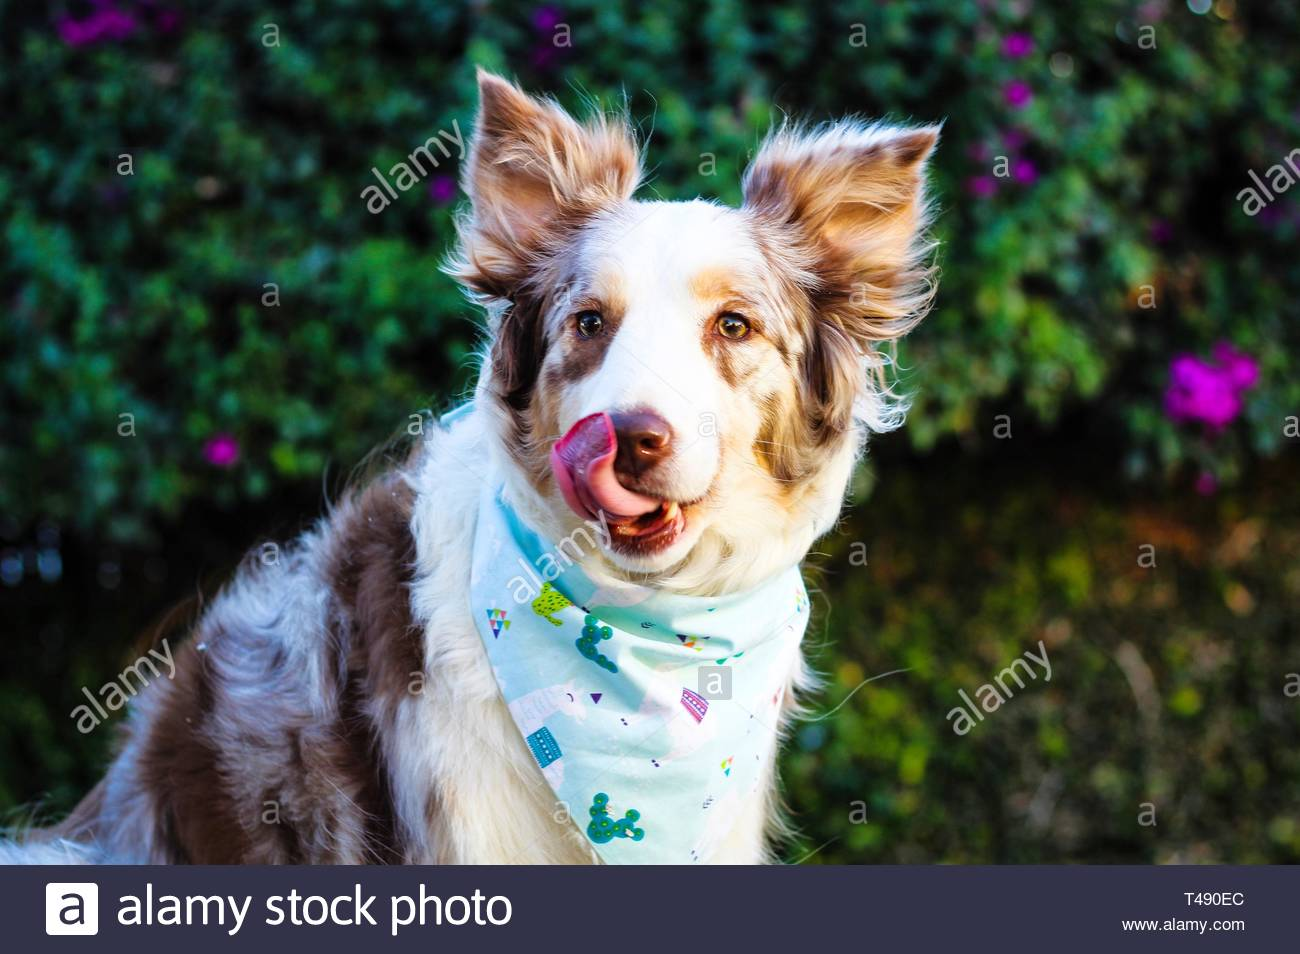 Dog Licking Nose Stock Photos & Dog Licking Nose Stock